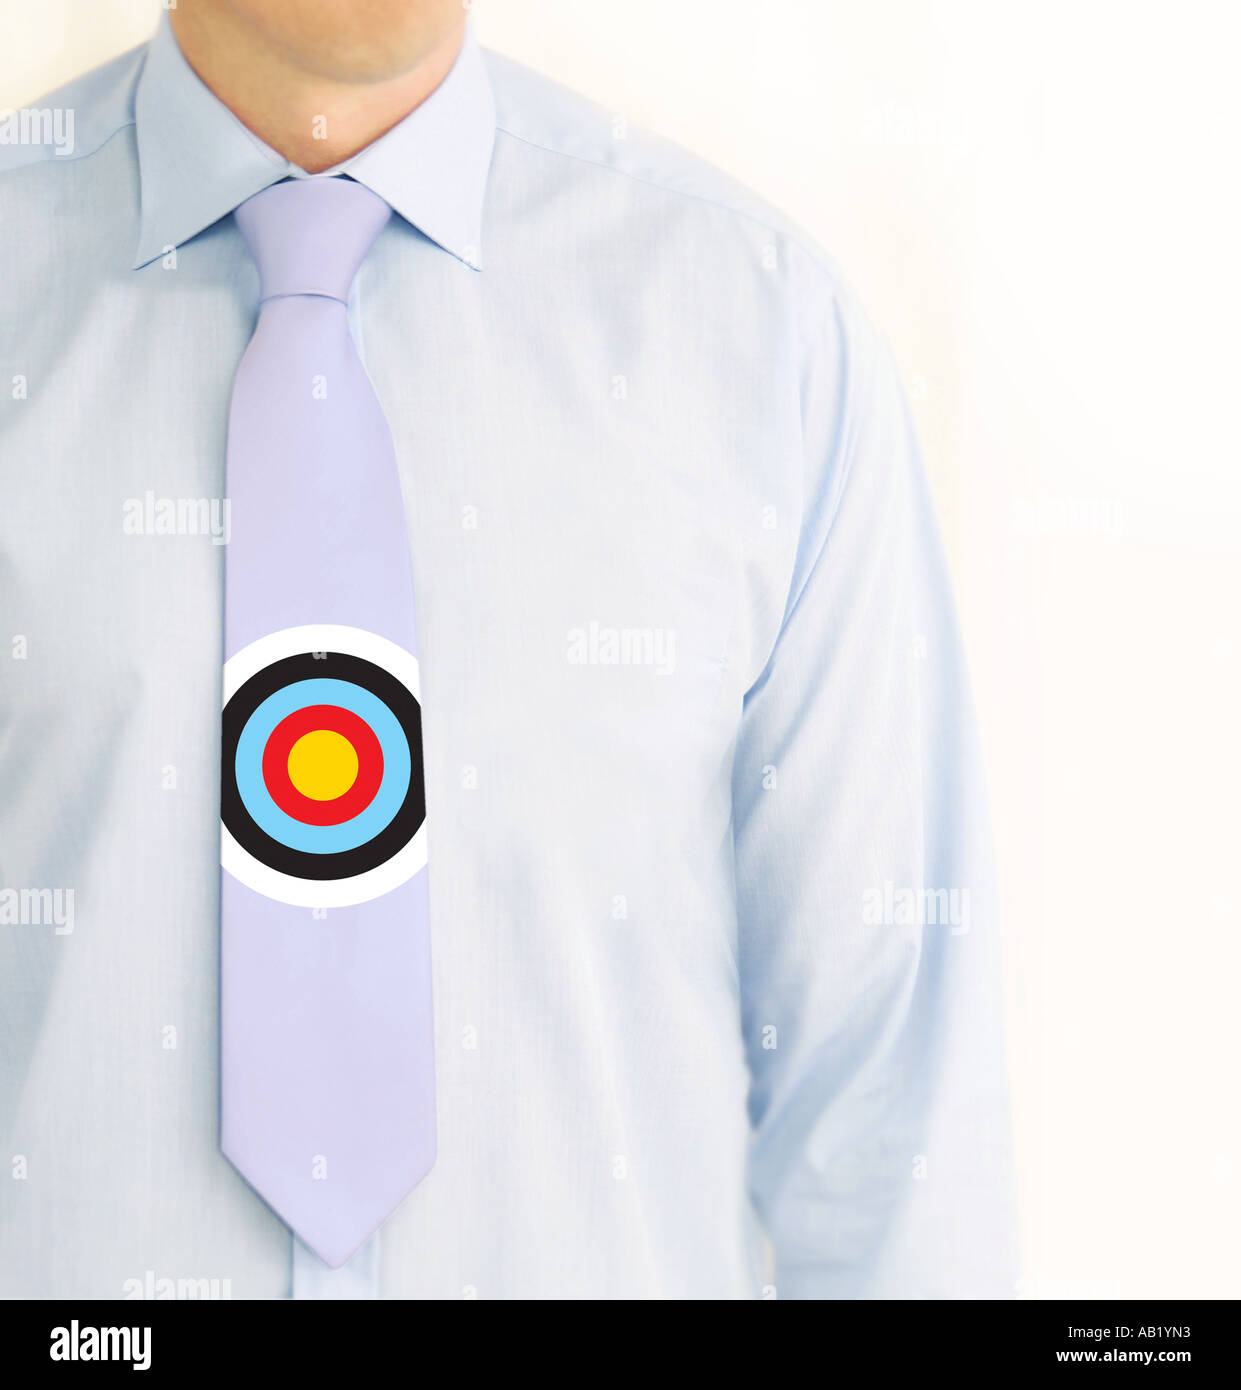 business man with a target on his tie - Stock Image